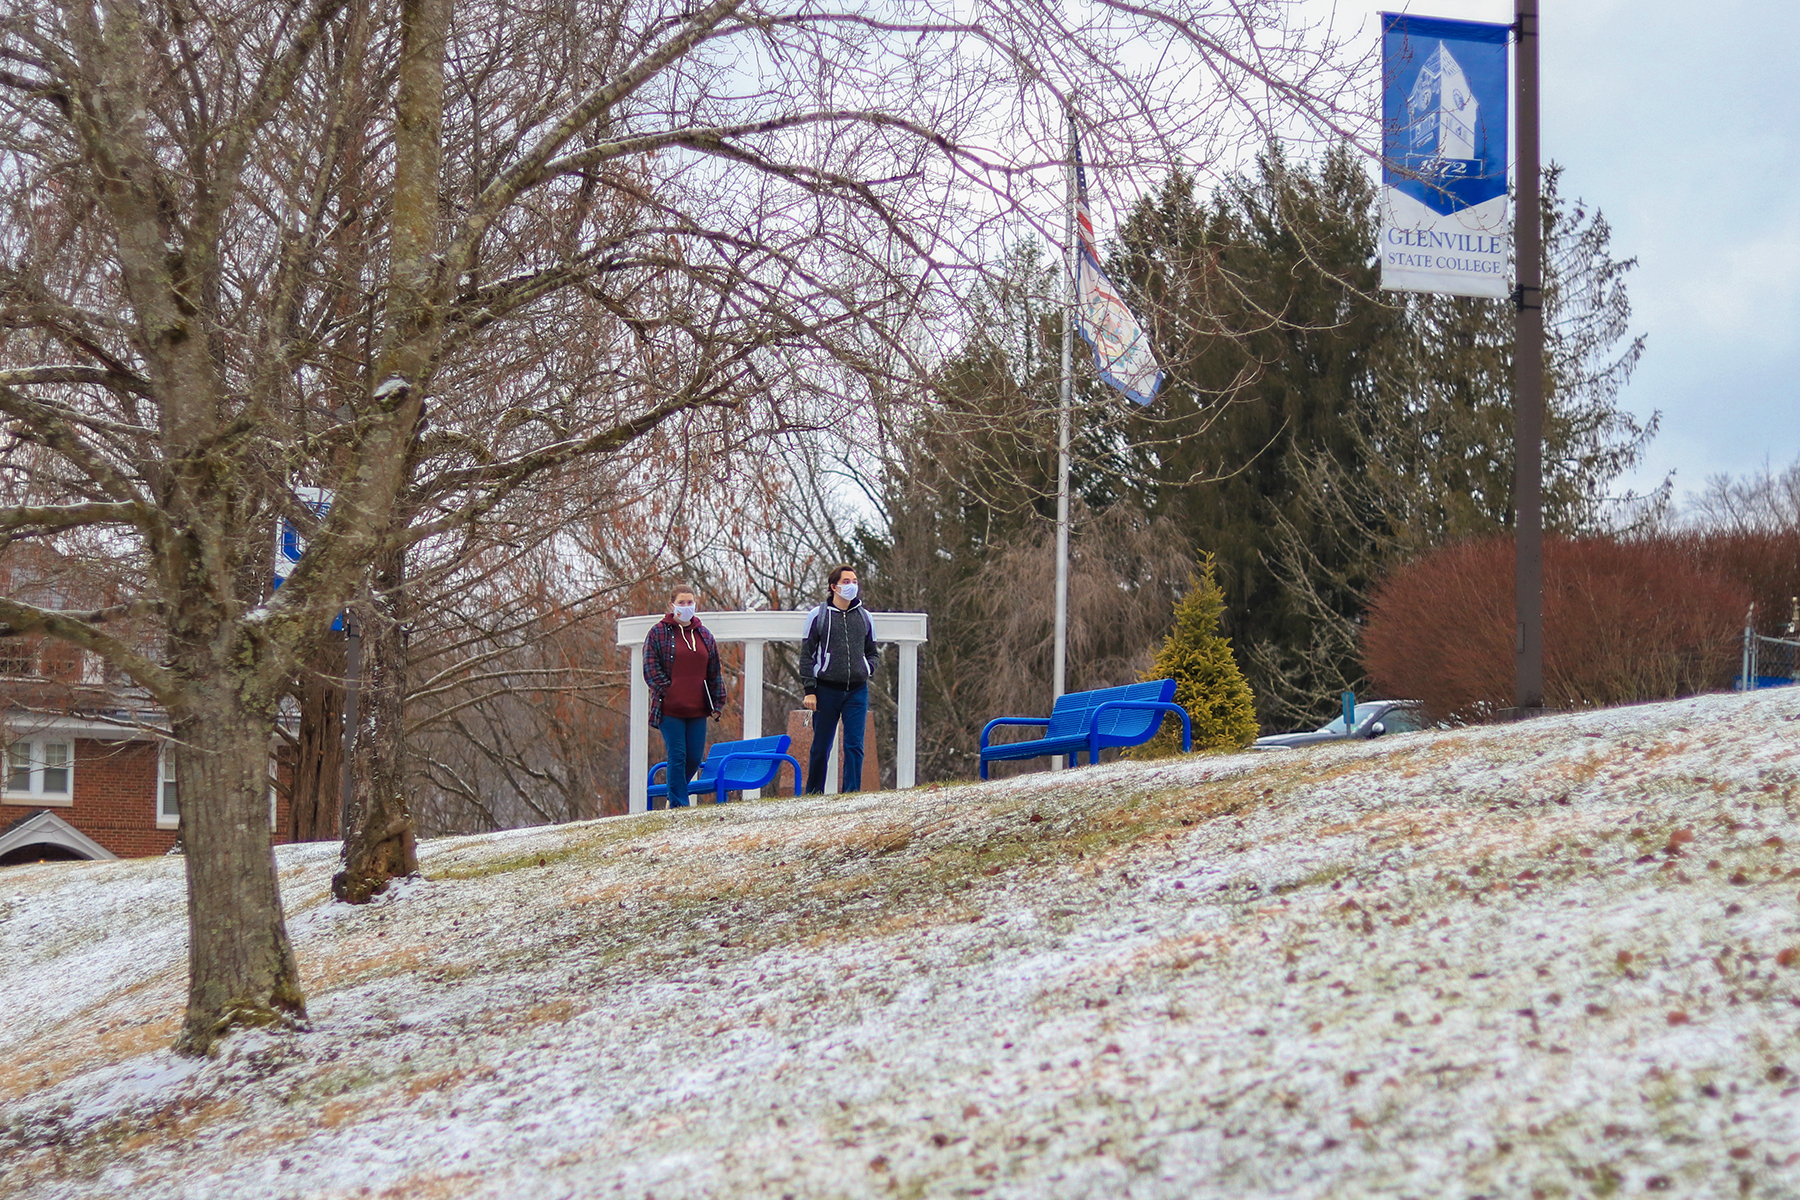 Students walk across Glenville State College's snowy campus on Tuesday, January 19, the first day of the spring 2021 semester